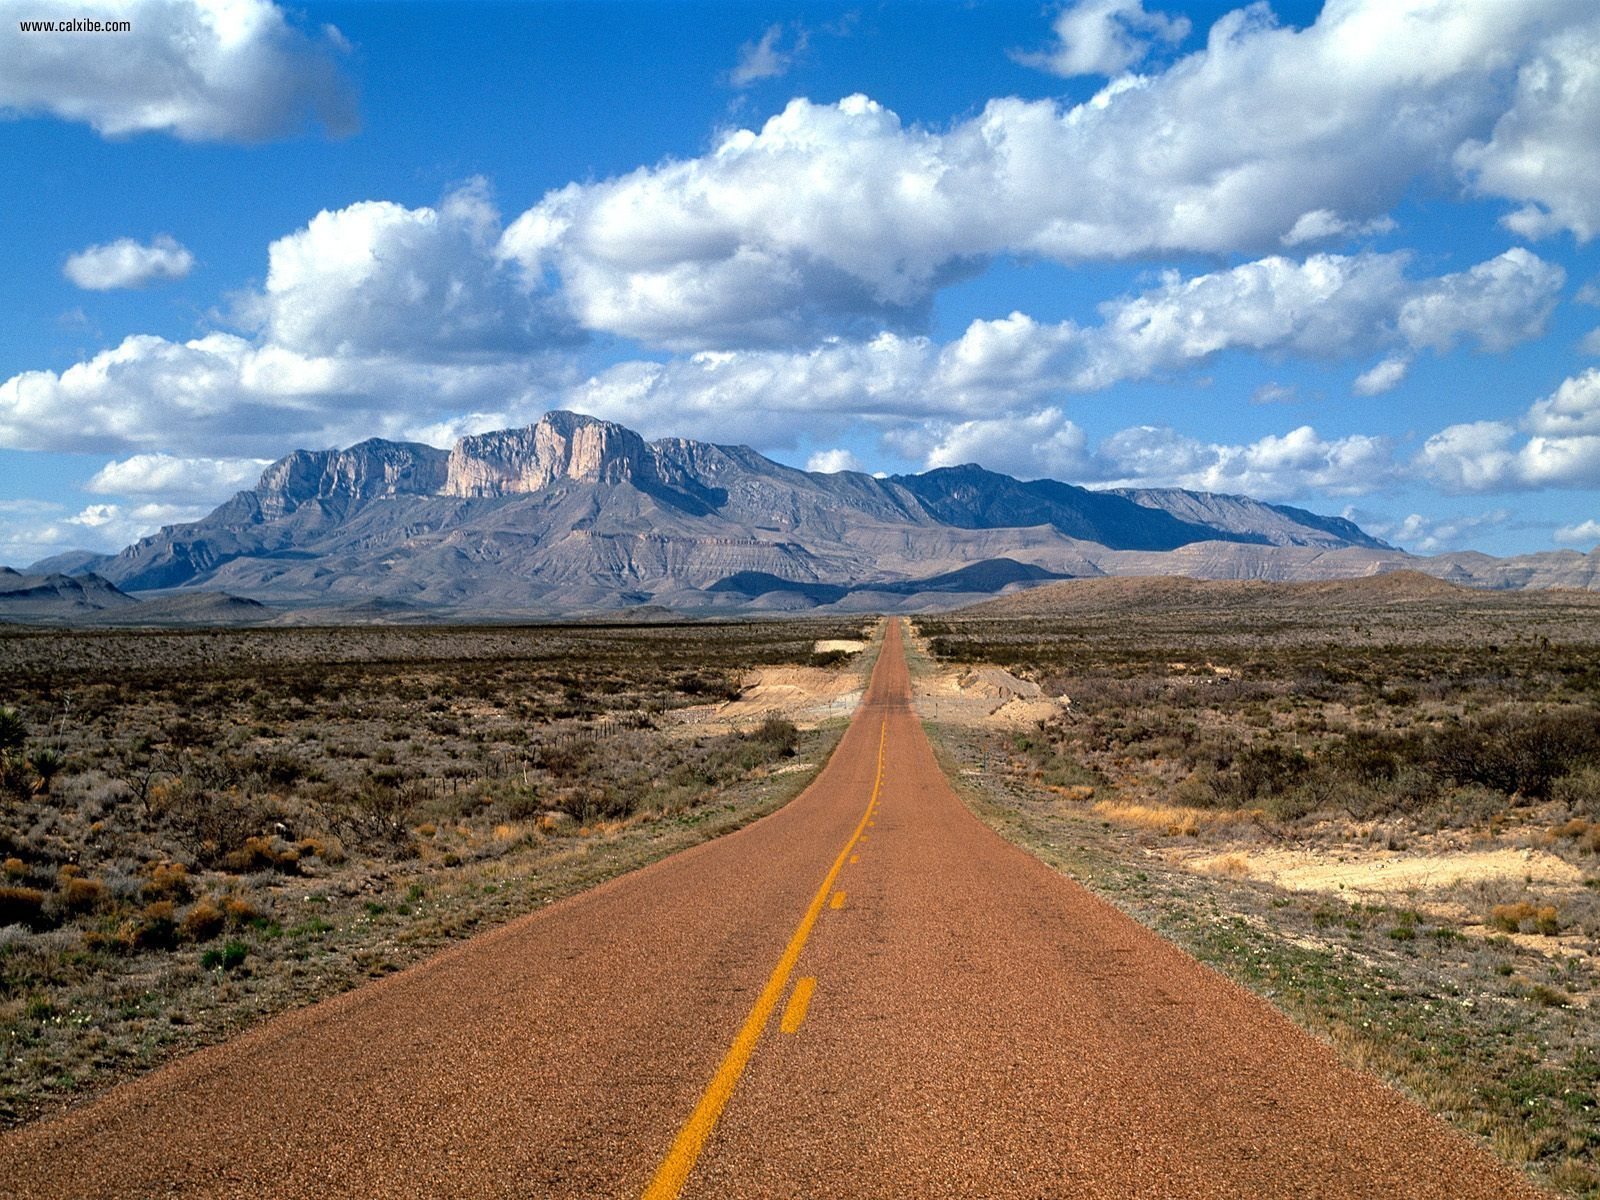 Lonesome_Highway_Guadalupe_Mountains_Texas.jpg